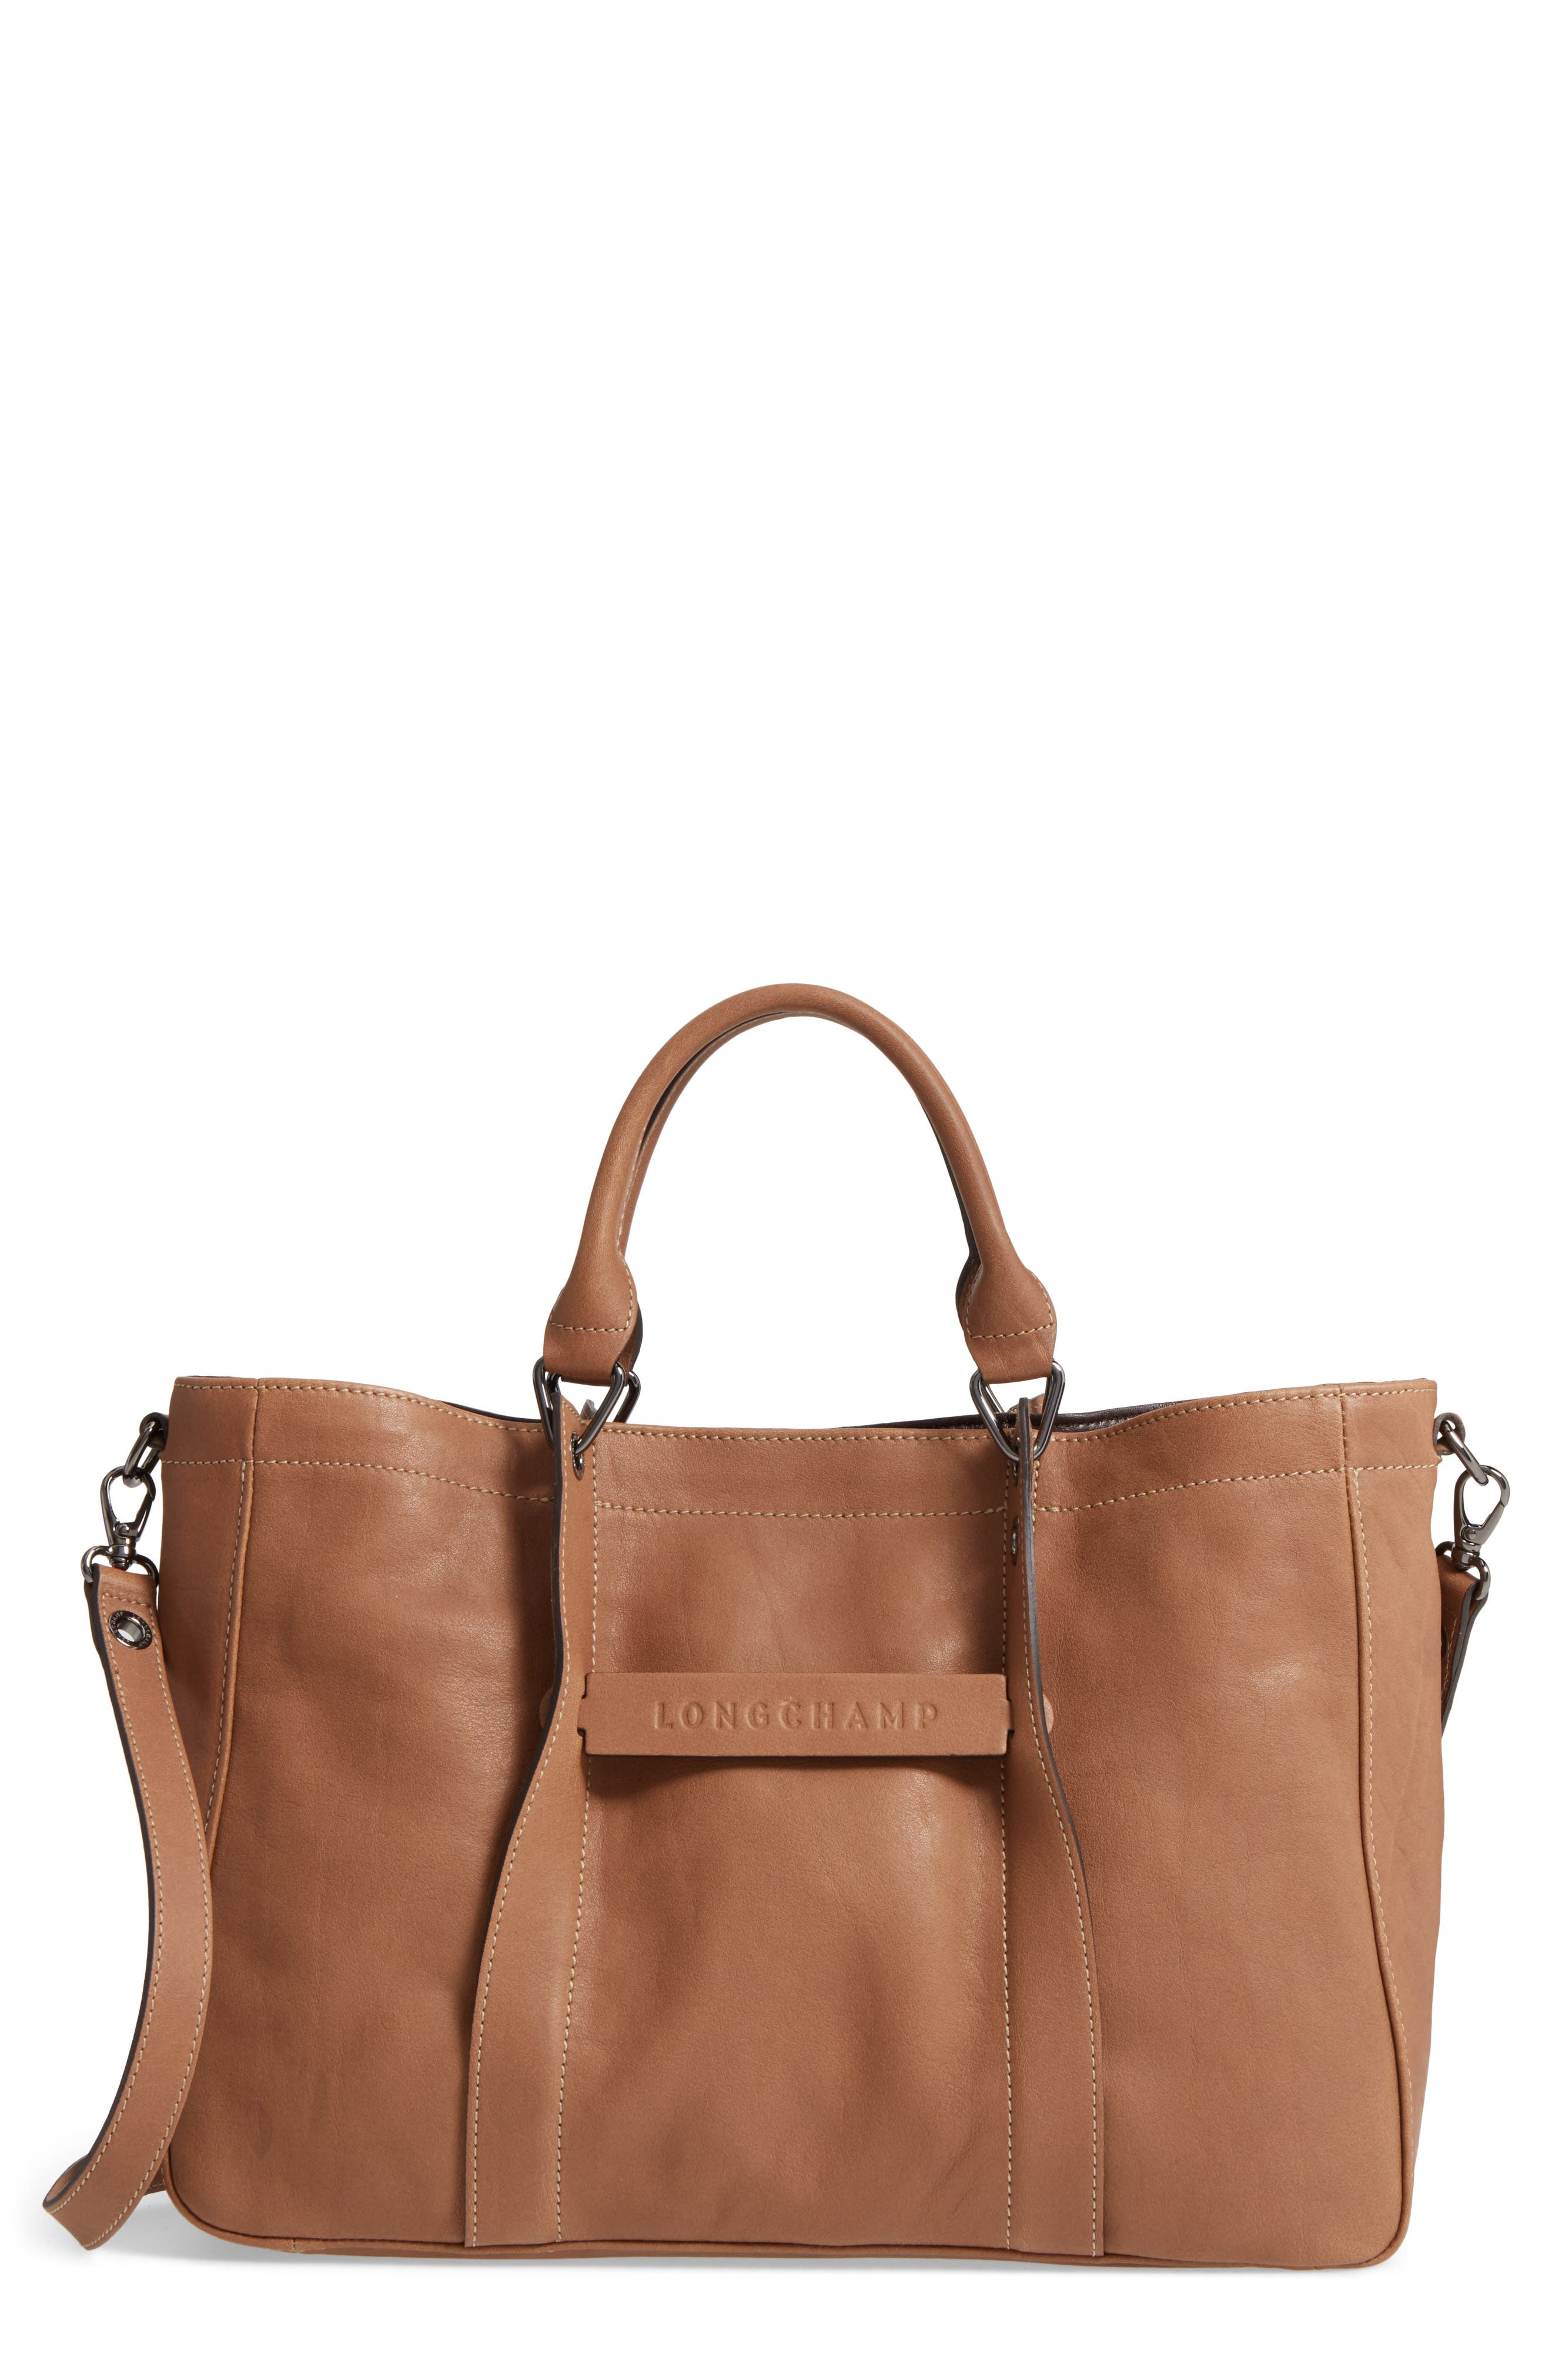 3D Leather Tote,                         Main,                         color, 250